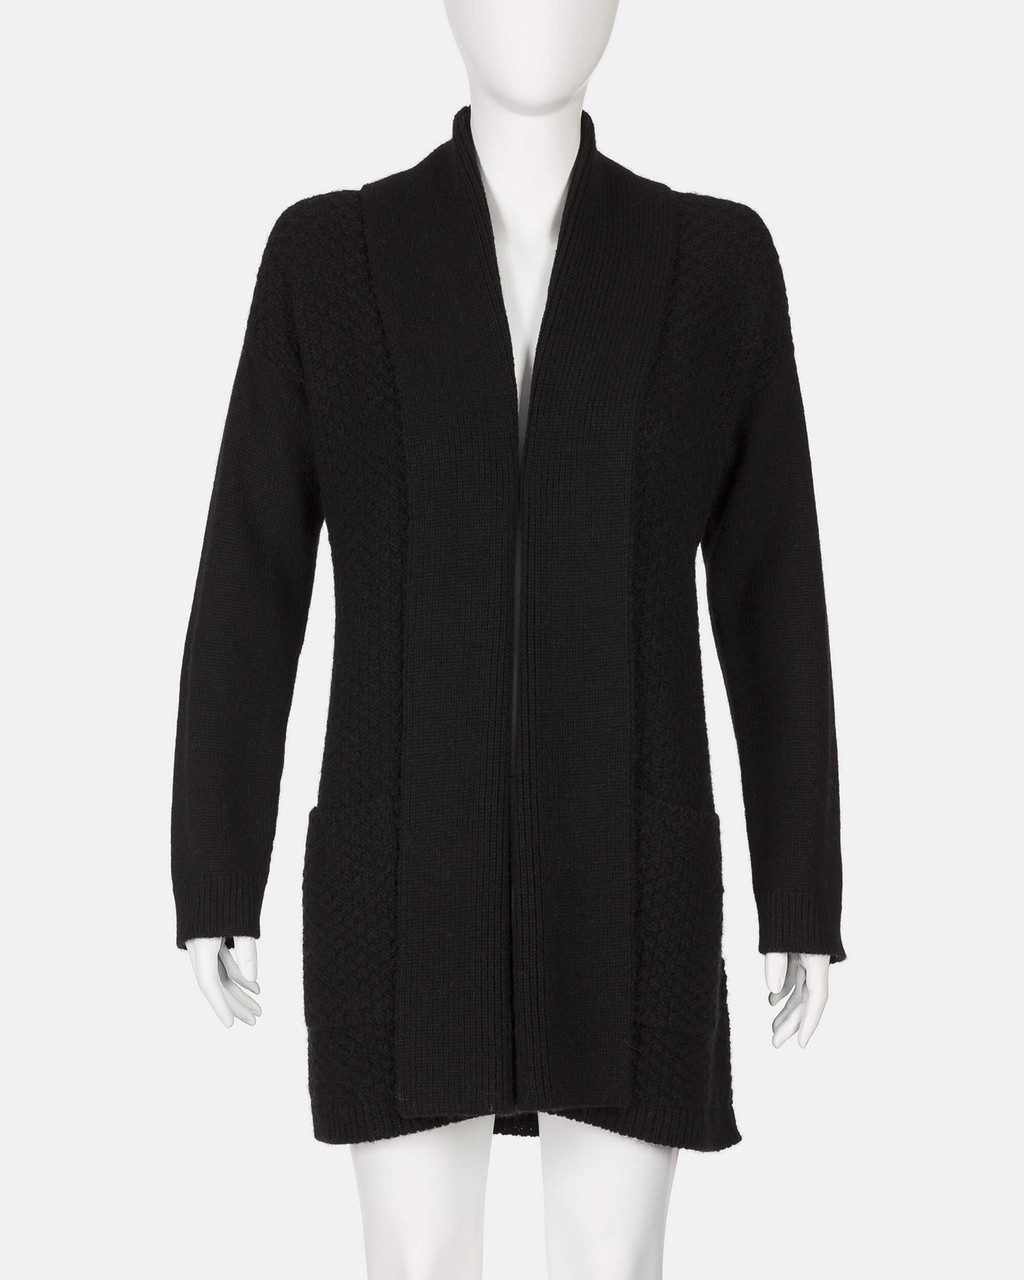 alicia adams alpaca women's whistler coatigan, alpaca blanket coat, alpaca coat womens, alpaca outerwear for women, black alpaca sweater coat